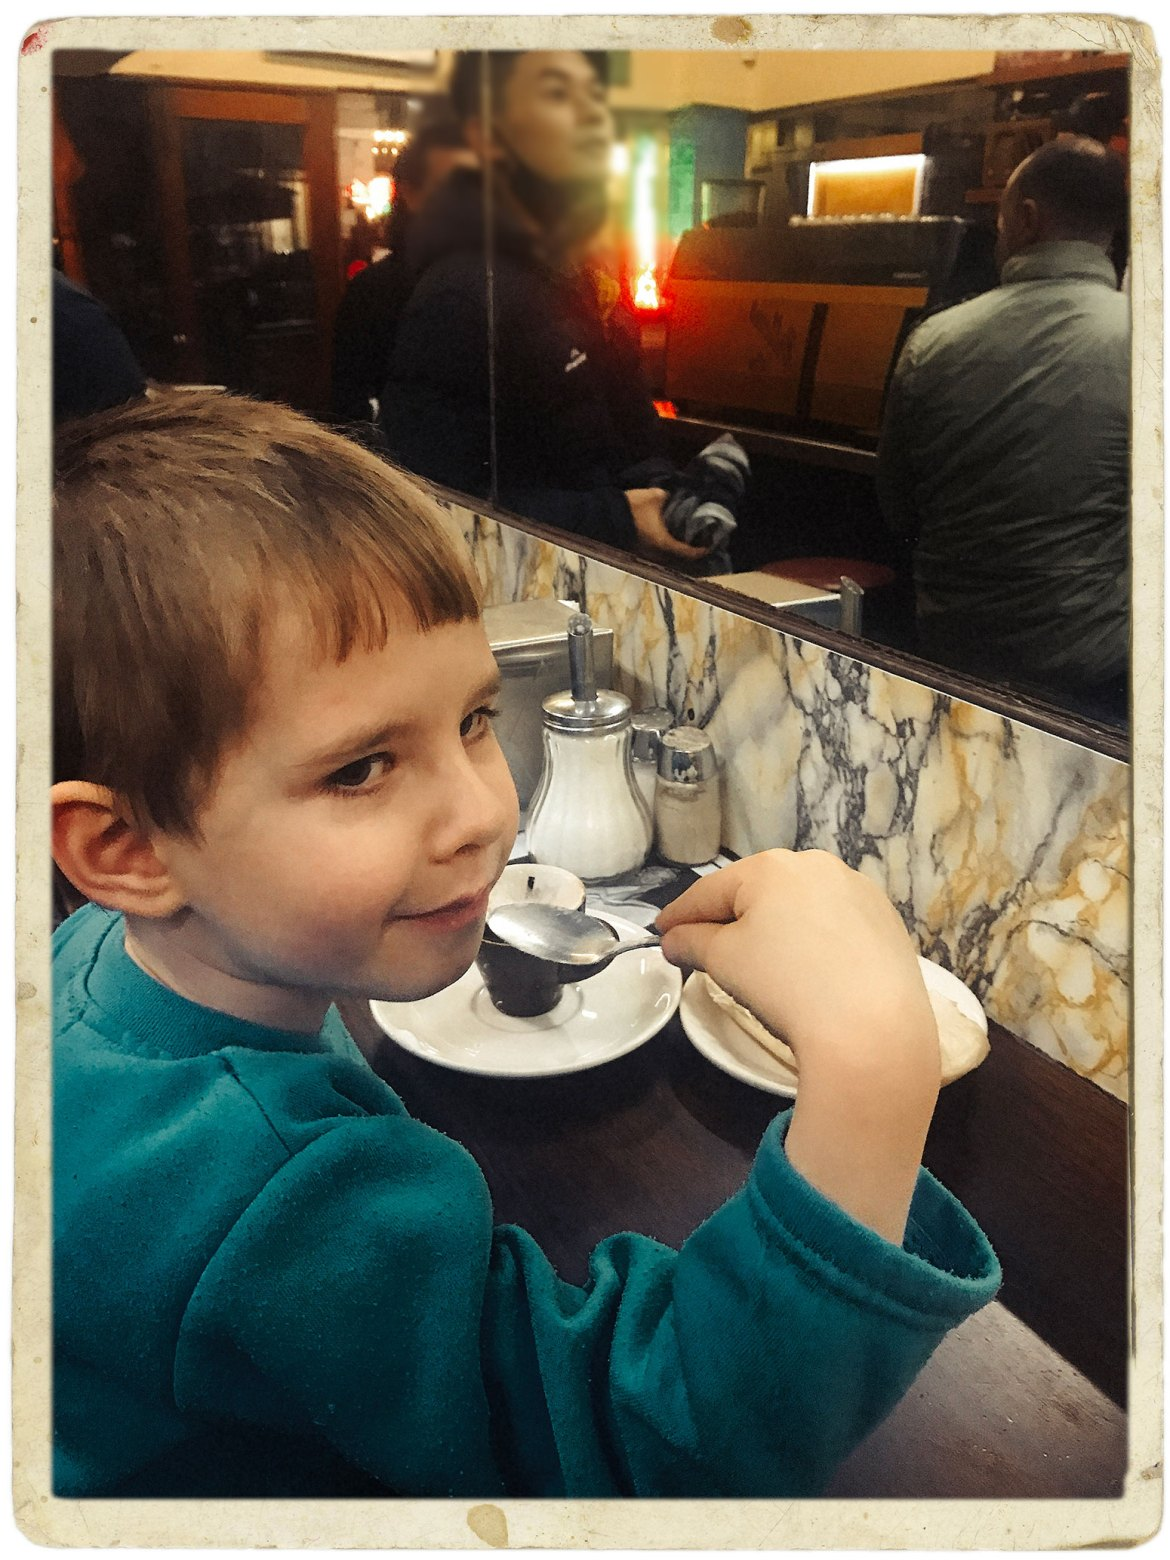 Elisey Durrant's first proud and pleasing trip to Pellegrini's Espresso Bar